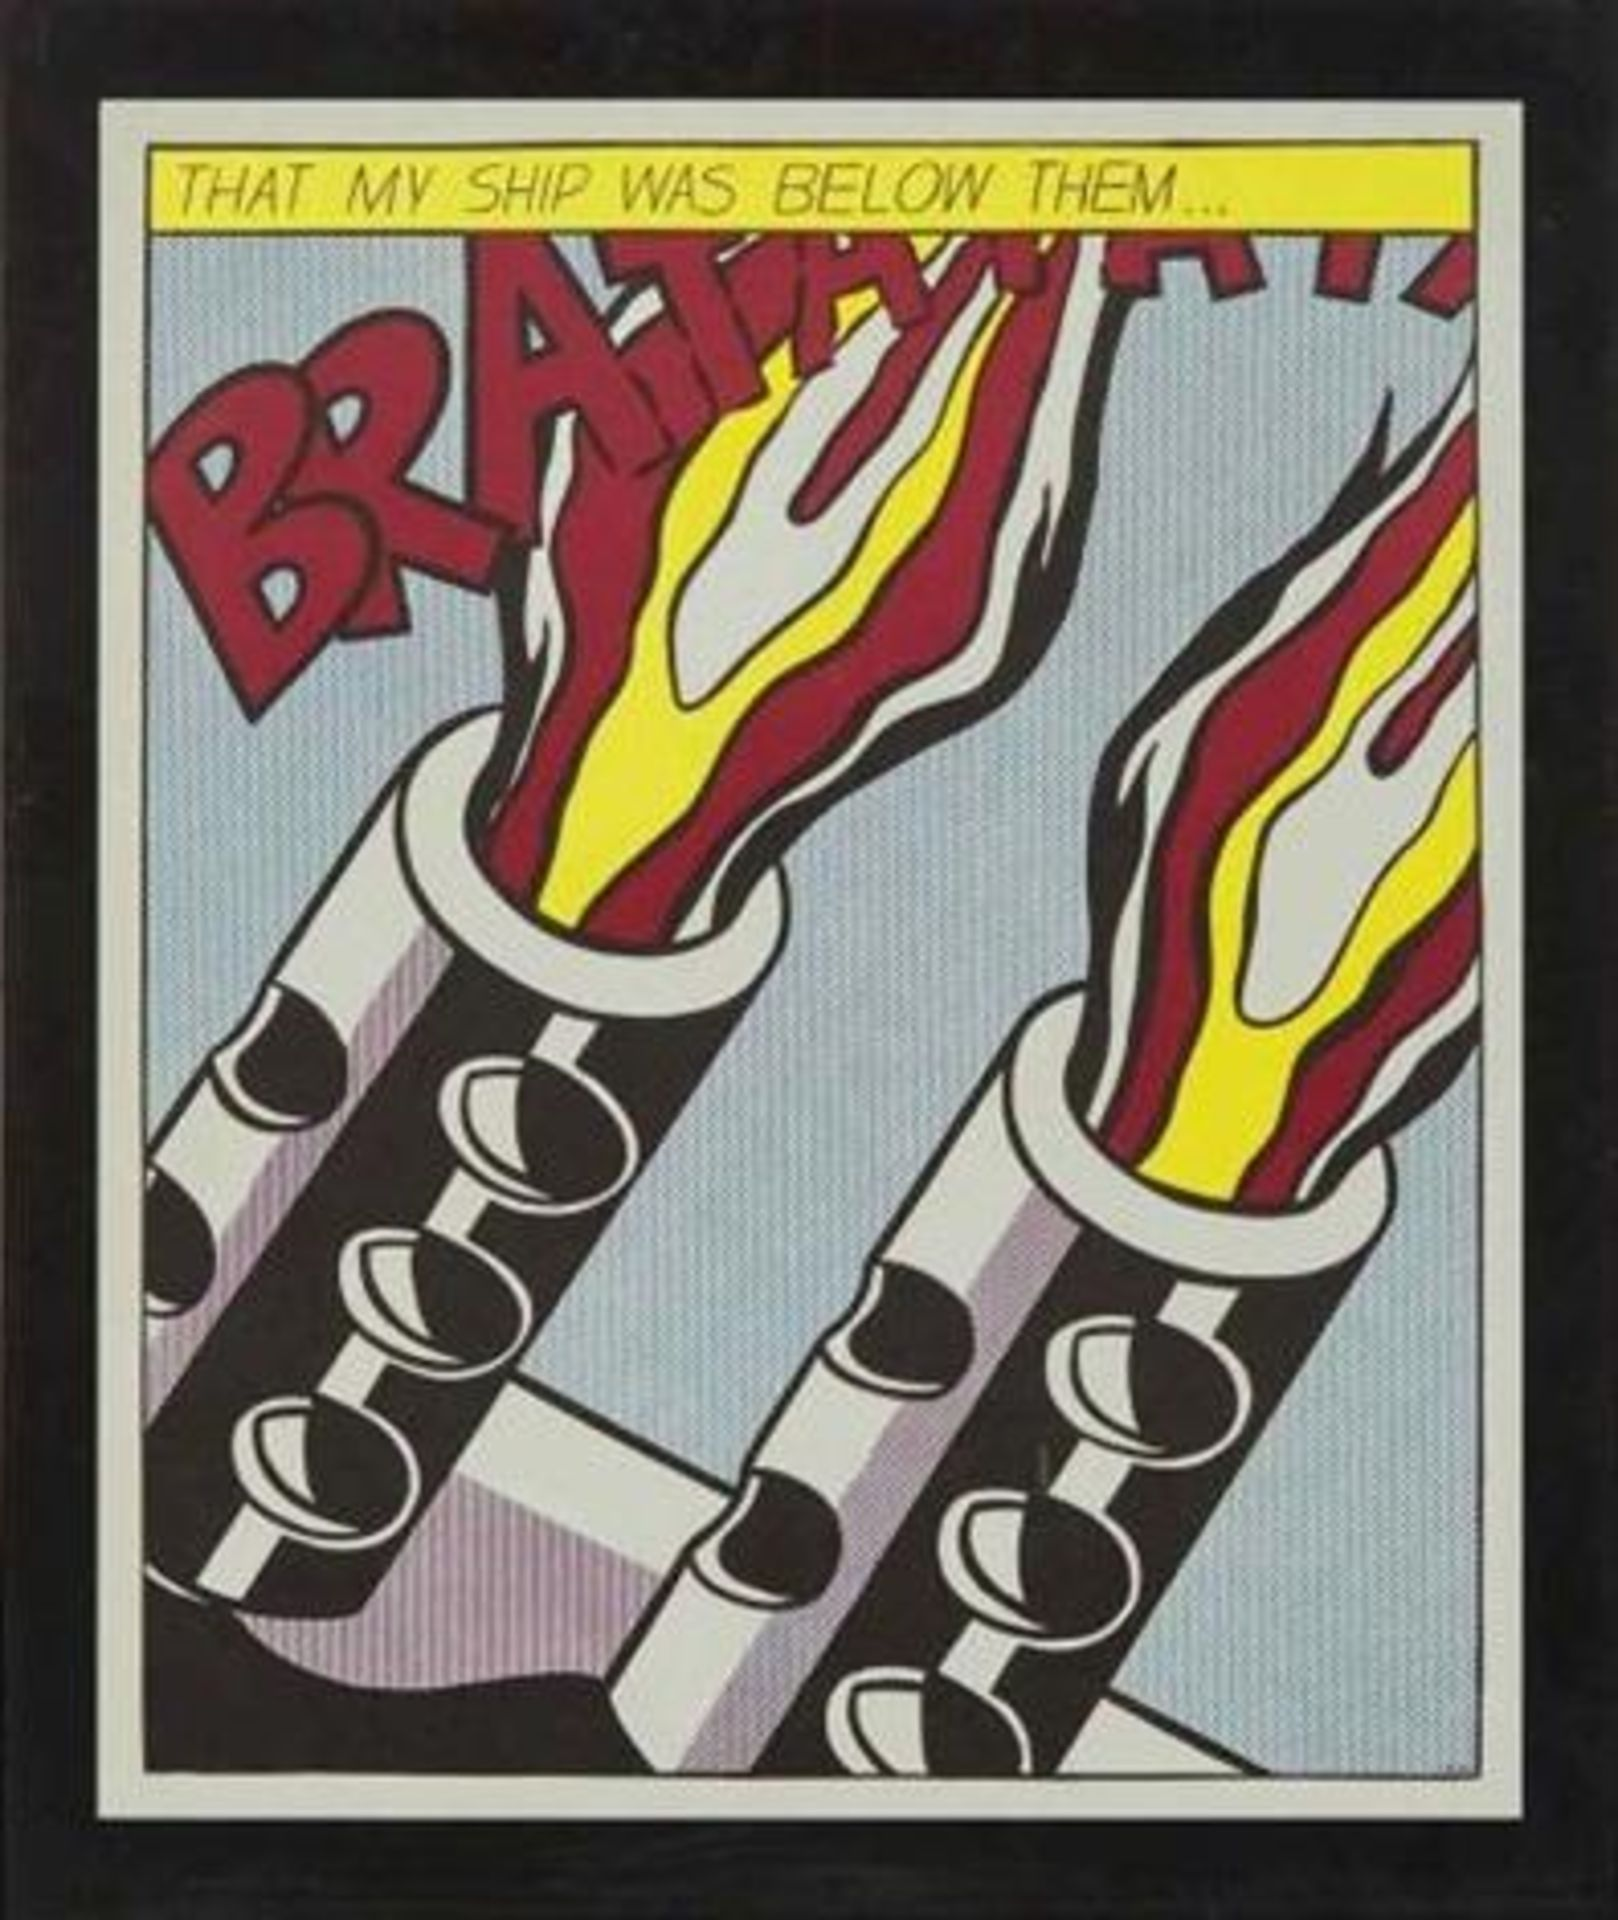 After Roy Lichtenstein (1932-1997) As i opened fire - 3 nach 1966 Offset-Lithographie Poster